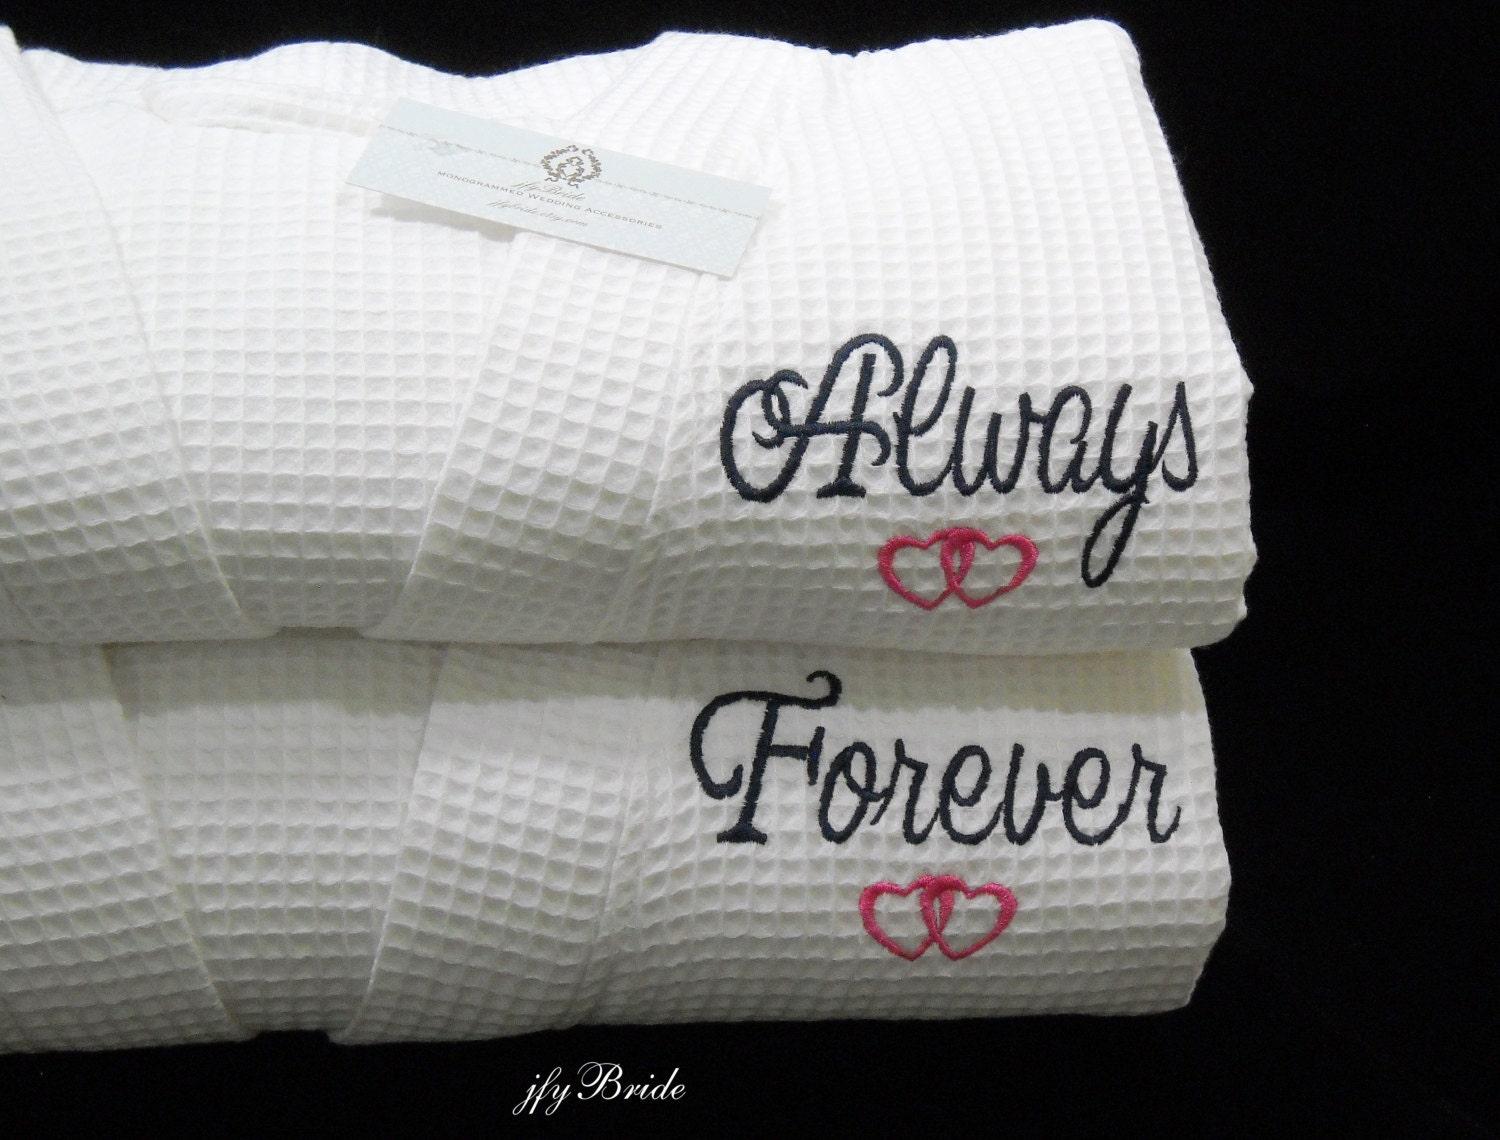 Cotton Wedding Anniversary Gifts For Her: Cotton Anniversary Gift For Her 2nd Anniversary Gift For